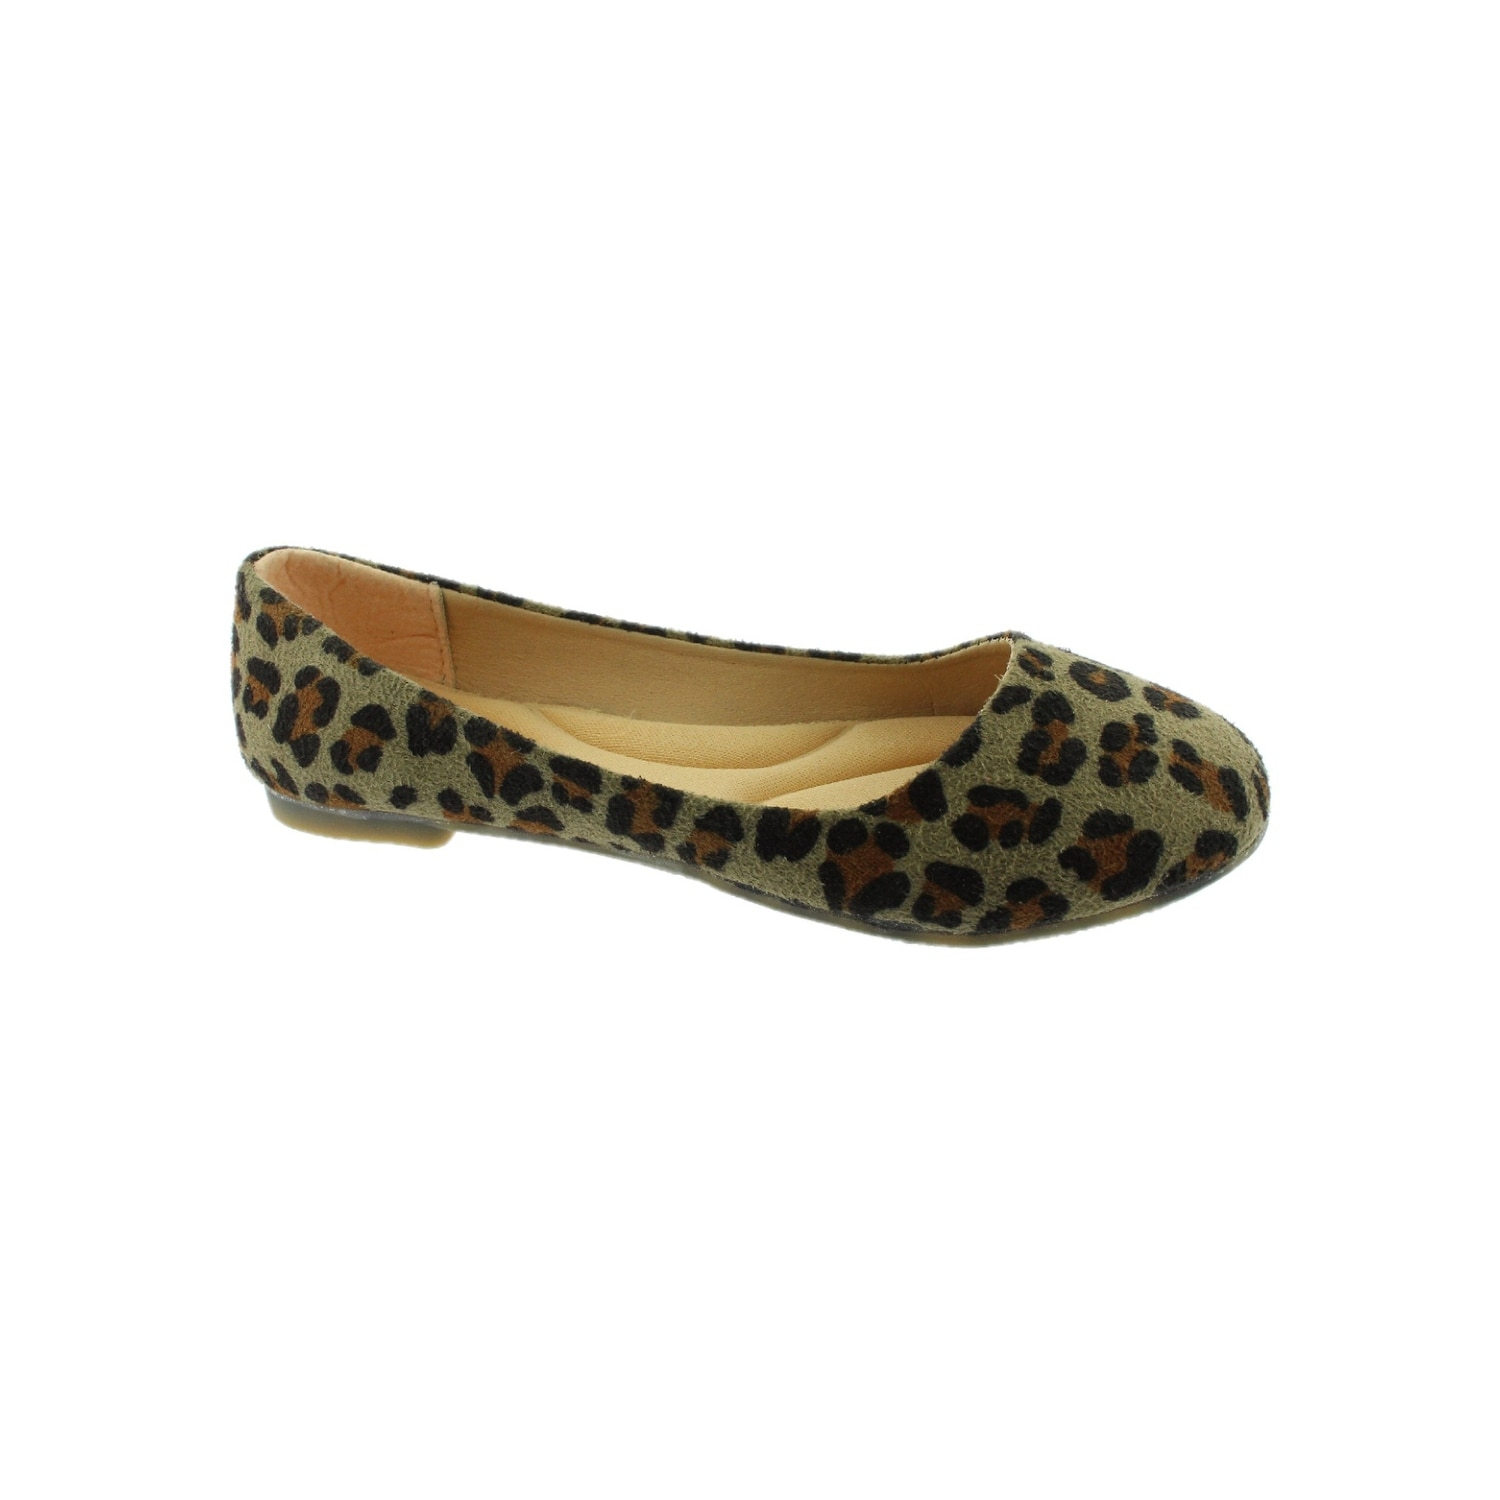 463c8ad0e Shop Women Leopard Rounded Tie Slip On Trendy Ballet Flats - Free Shipping  On Orders Over $45 - Overstock - 26521538